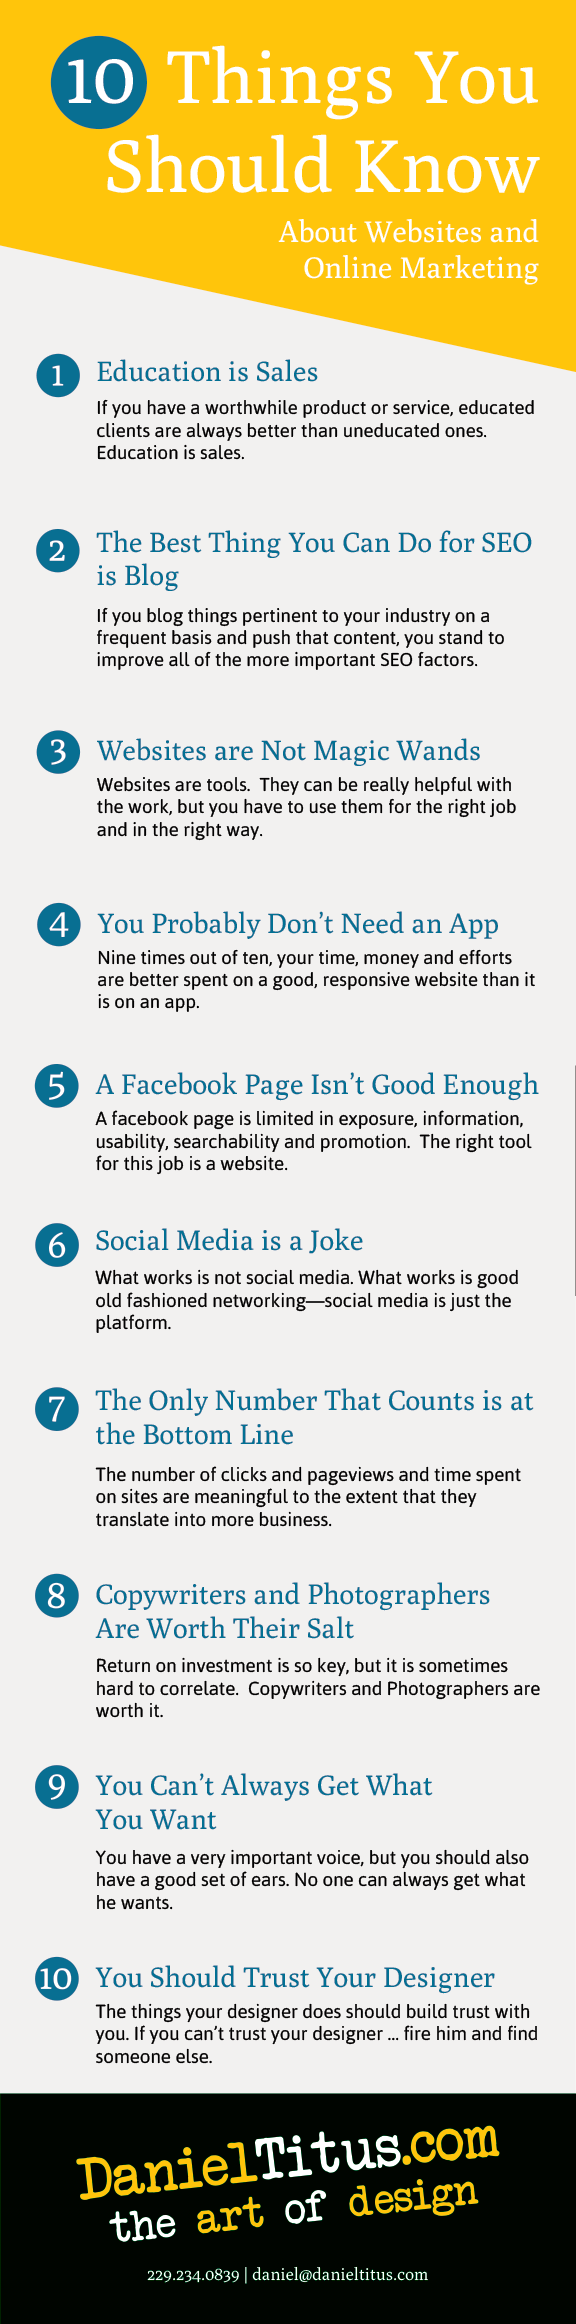 10 Things You Should Know About Websites and Online Marketing